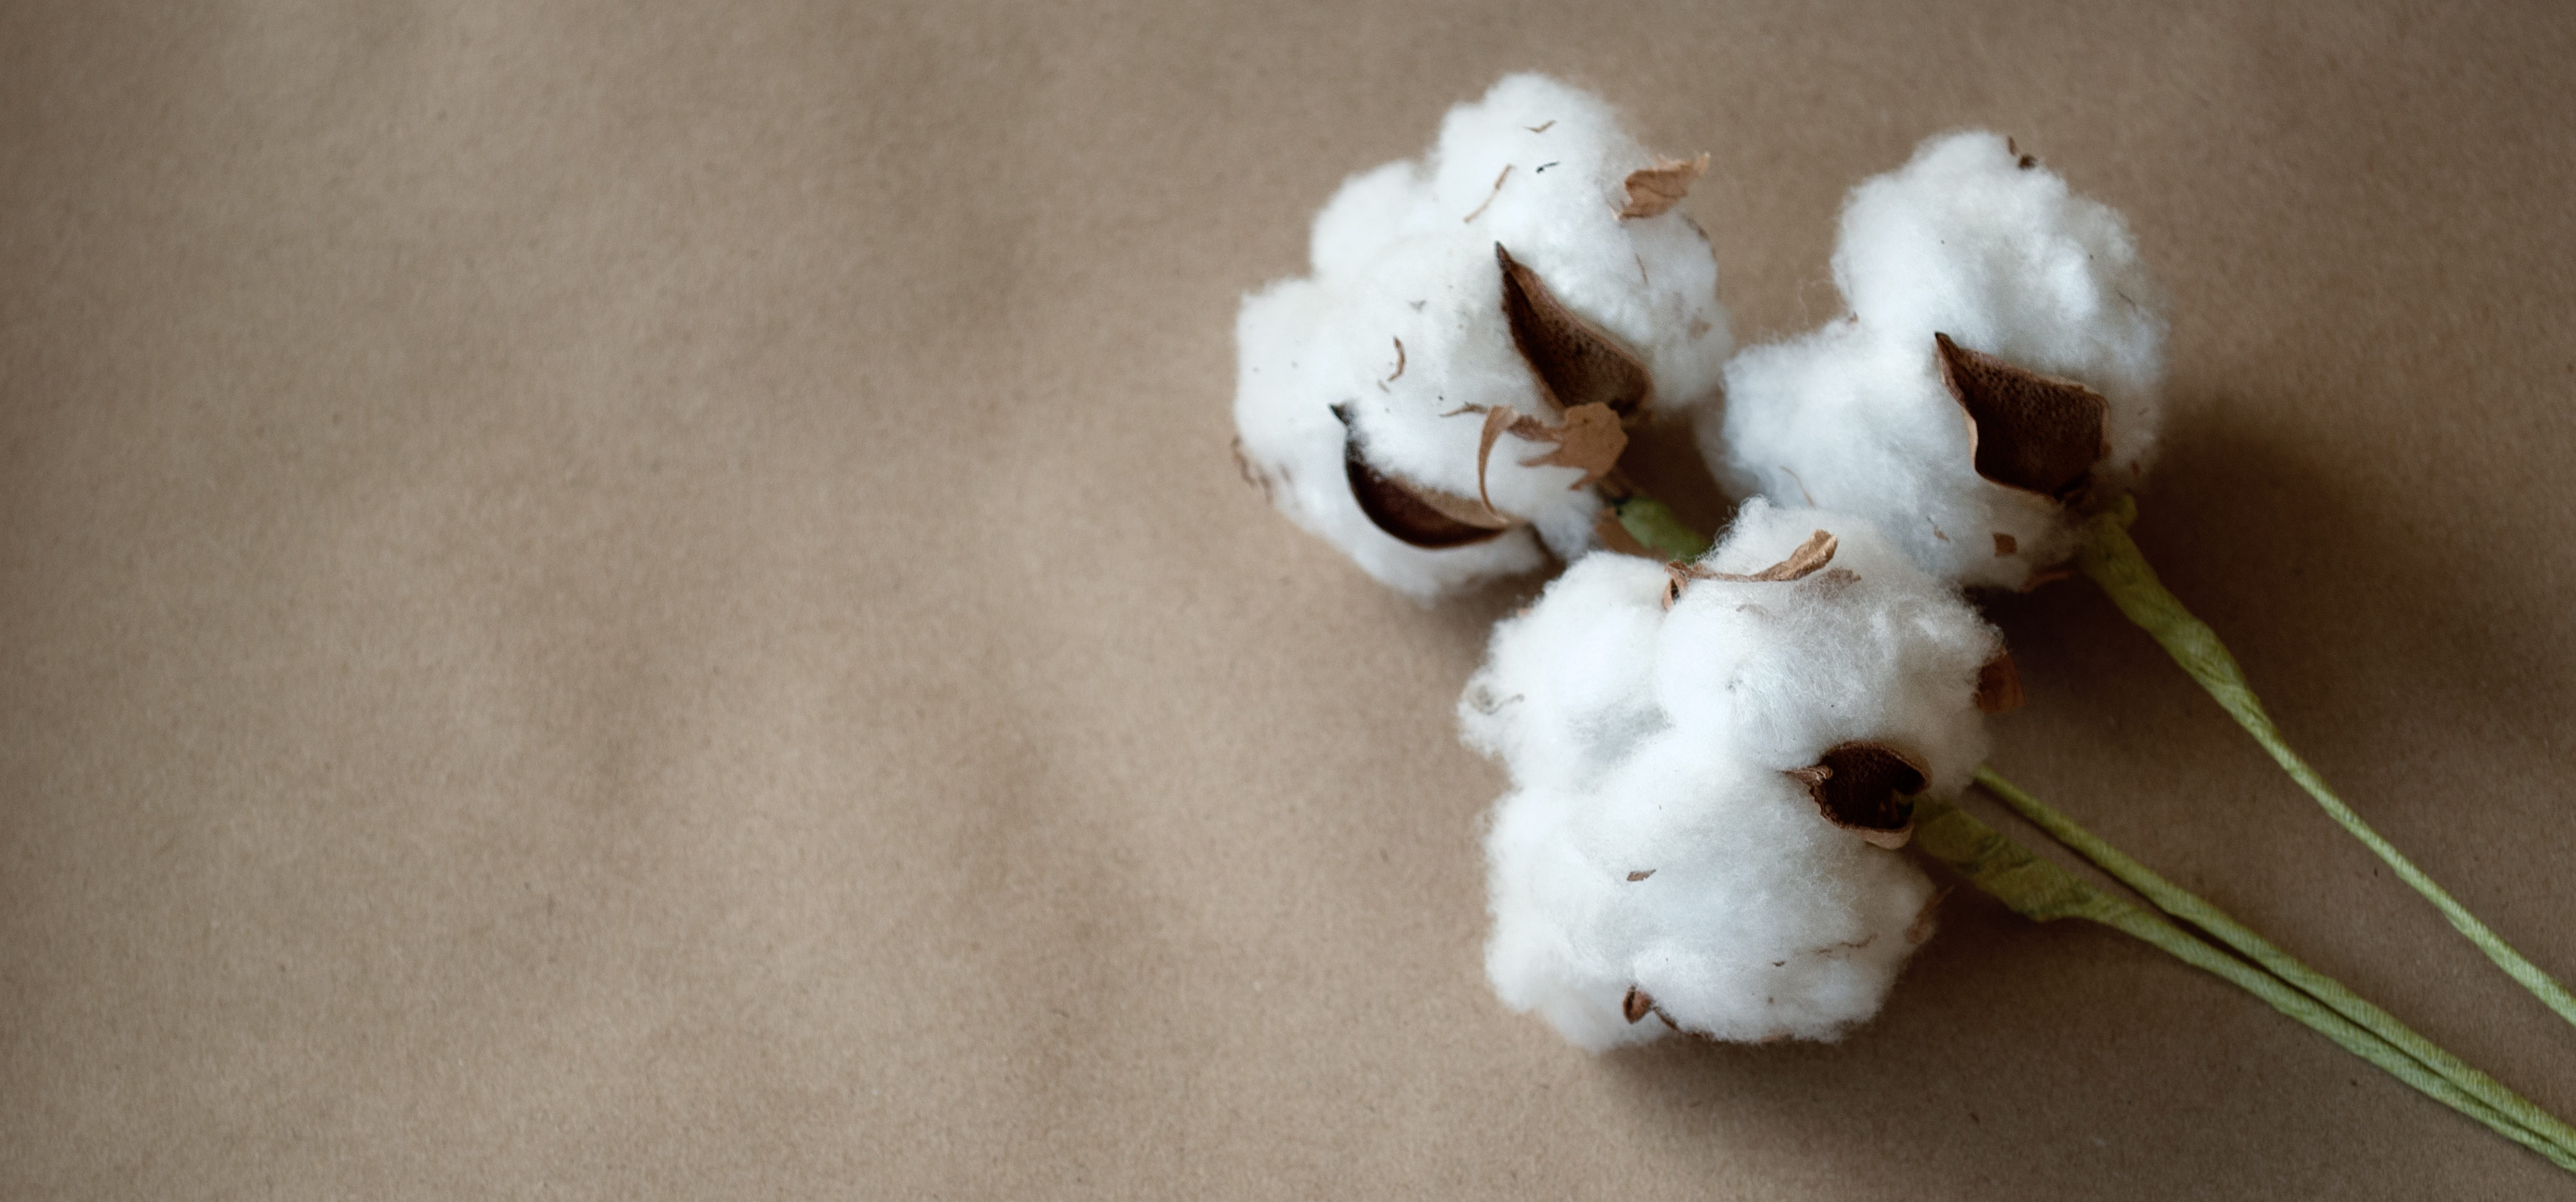 Cotton. Cotton plant, flower. White, fluffy, tender, natural. Nature. Raw material for fabric. Cotton background with kraft paper. Three white flowers. Shutterstock